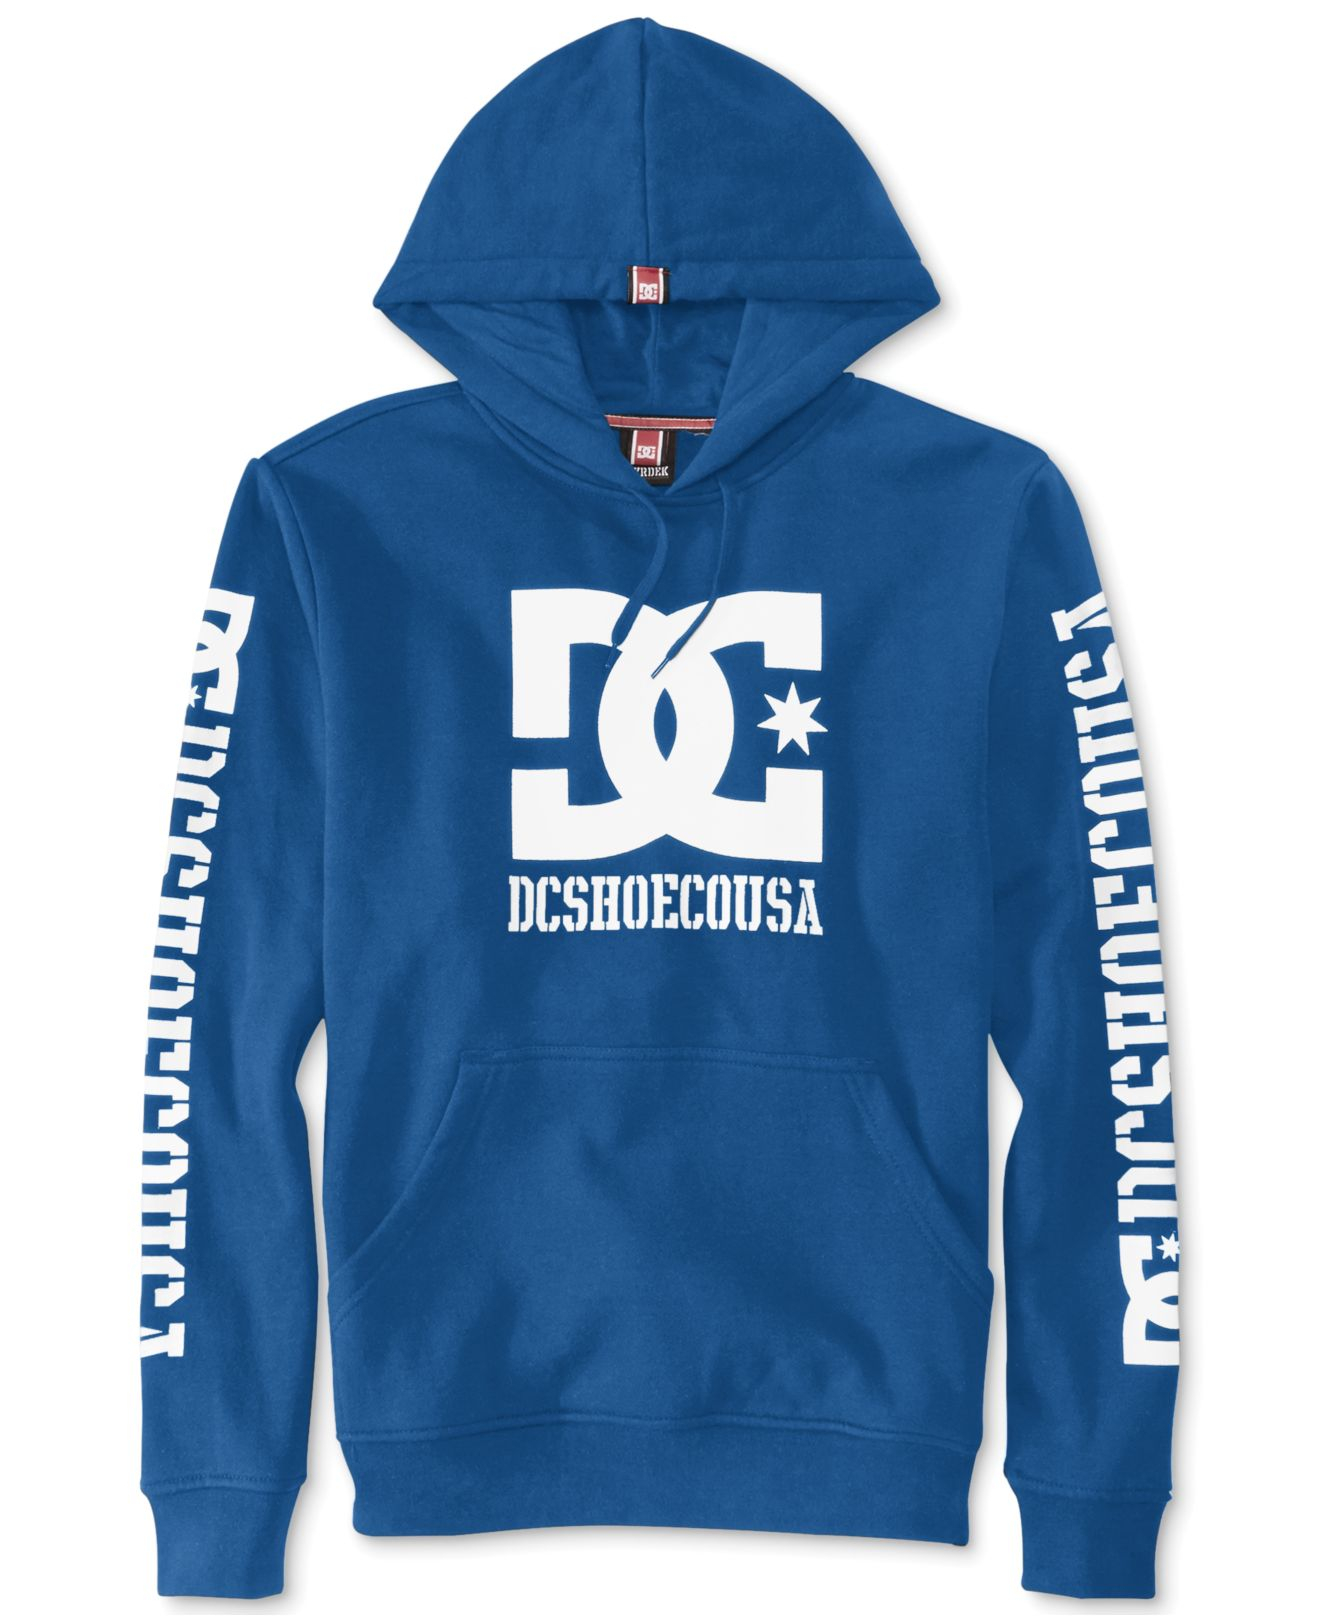 708453676 DC Shoes Rob Dyrdek Usa 2 Pullover Hoodie in Blue for Men - Lyst